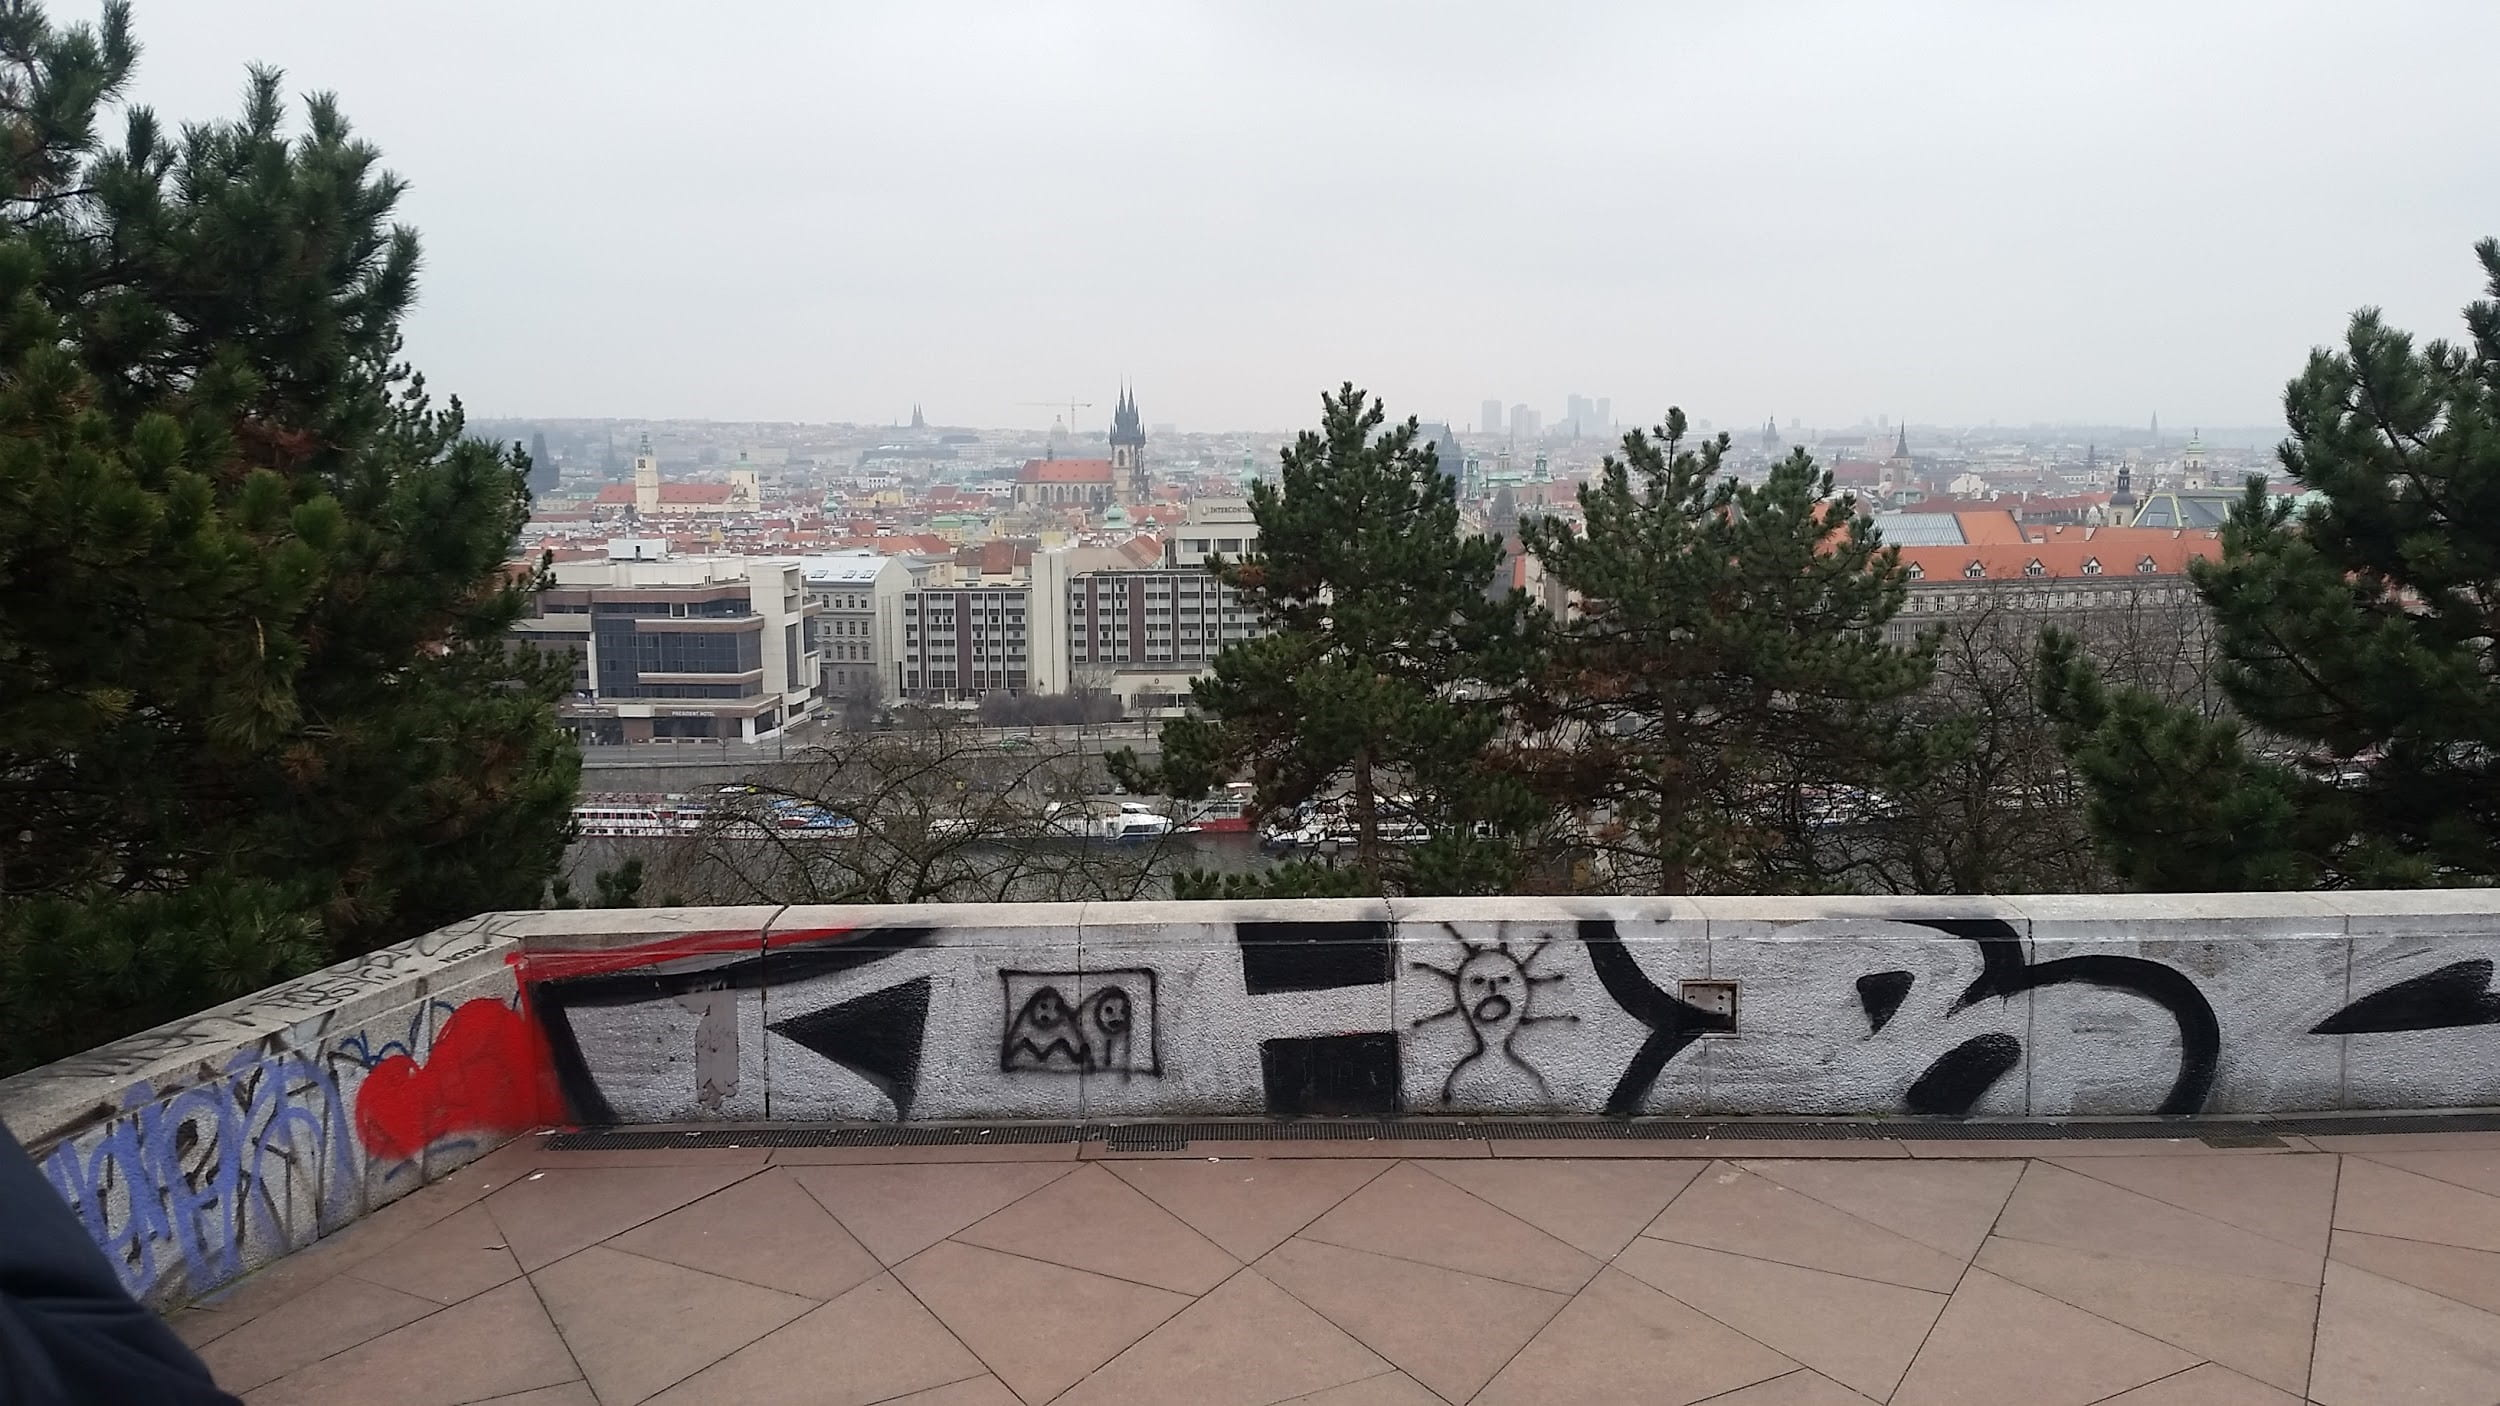 View of Prague from rooftop